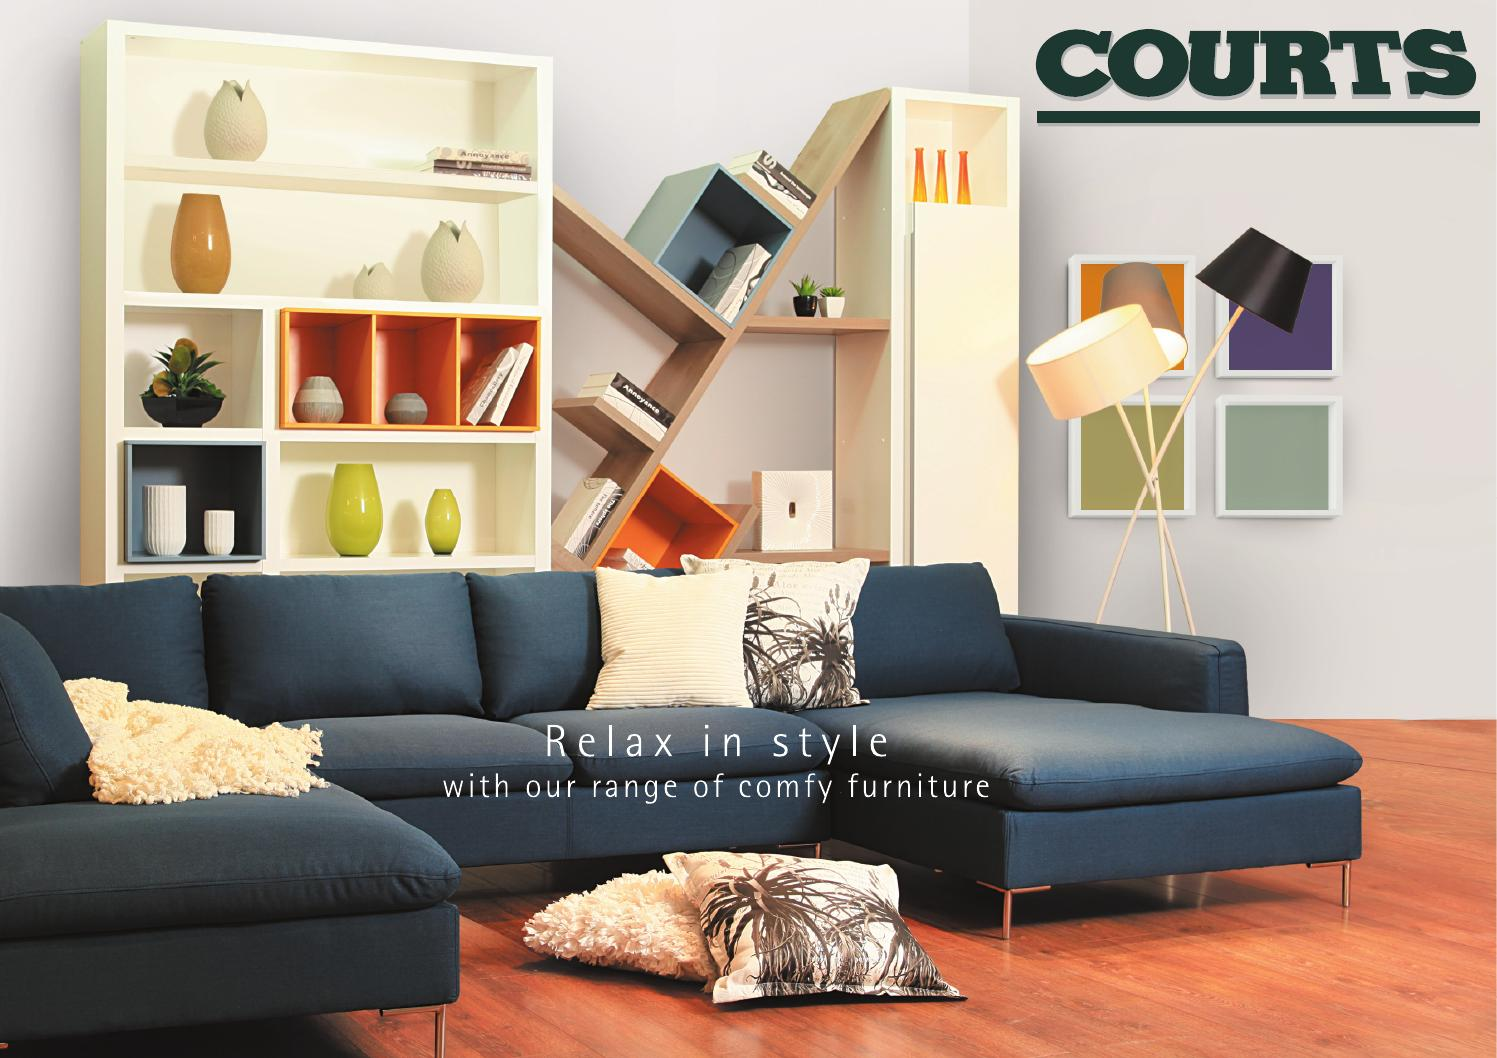 Courts Mauritius Furniture Catalogue 2015 by Dora Can - issuu